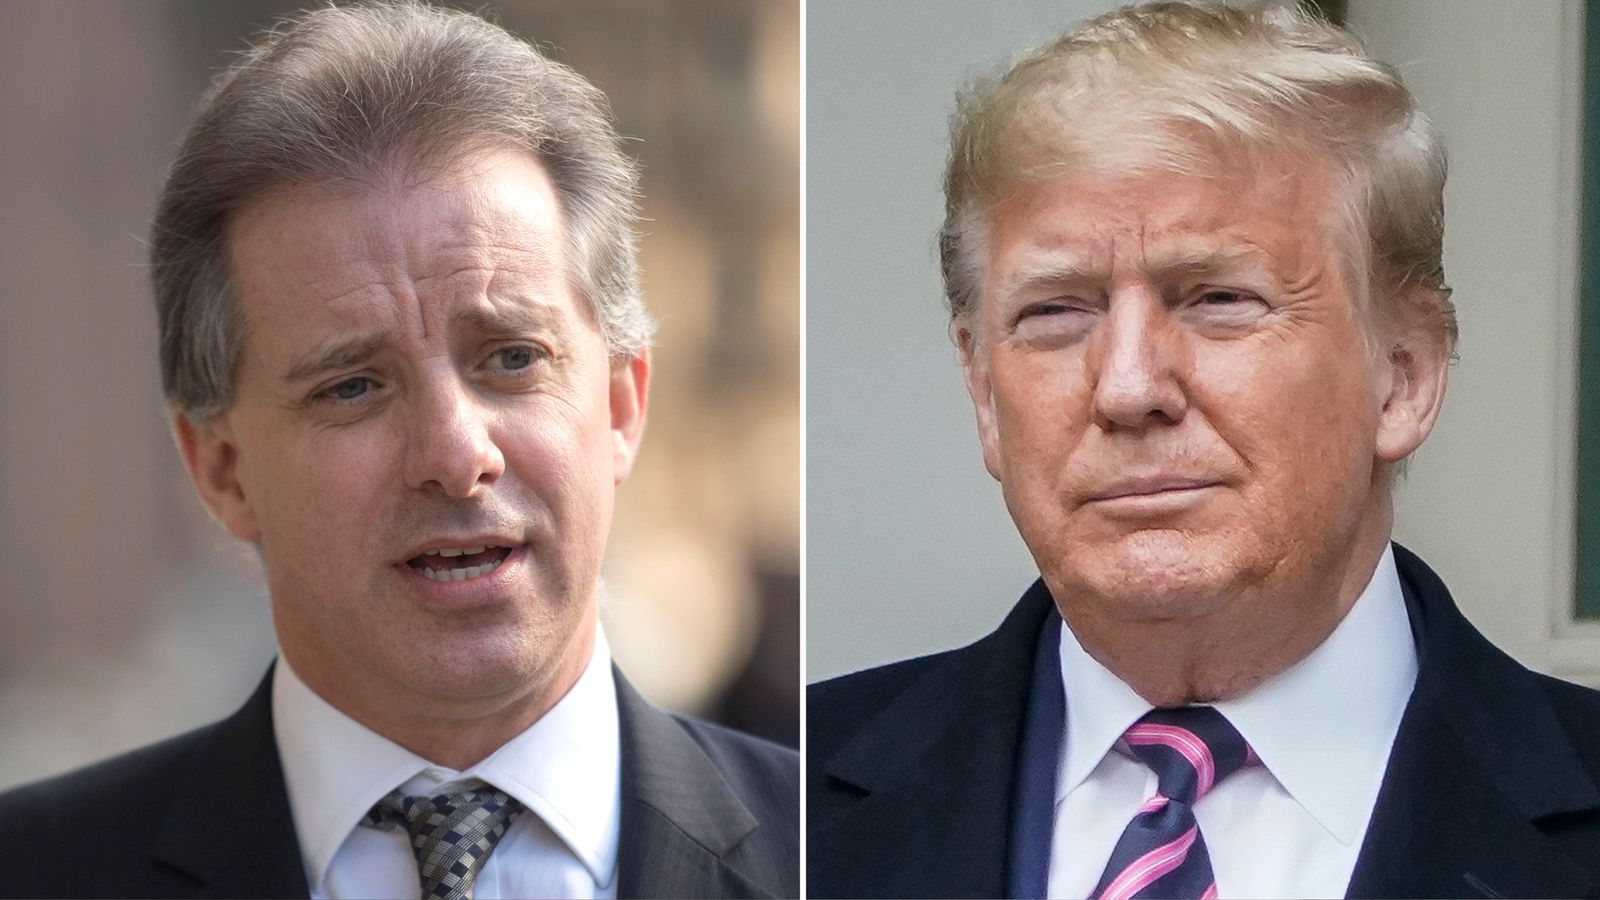 Libel action against ex-MI6 officer over Trump 'dossier' rejected by court